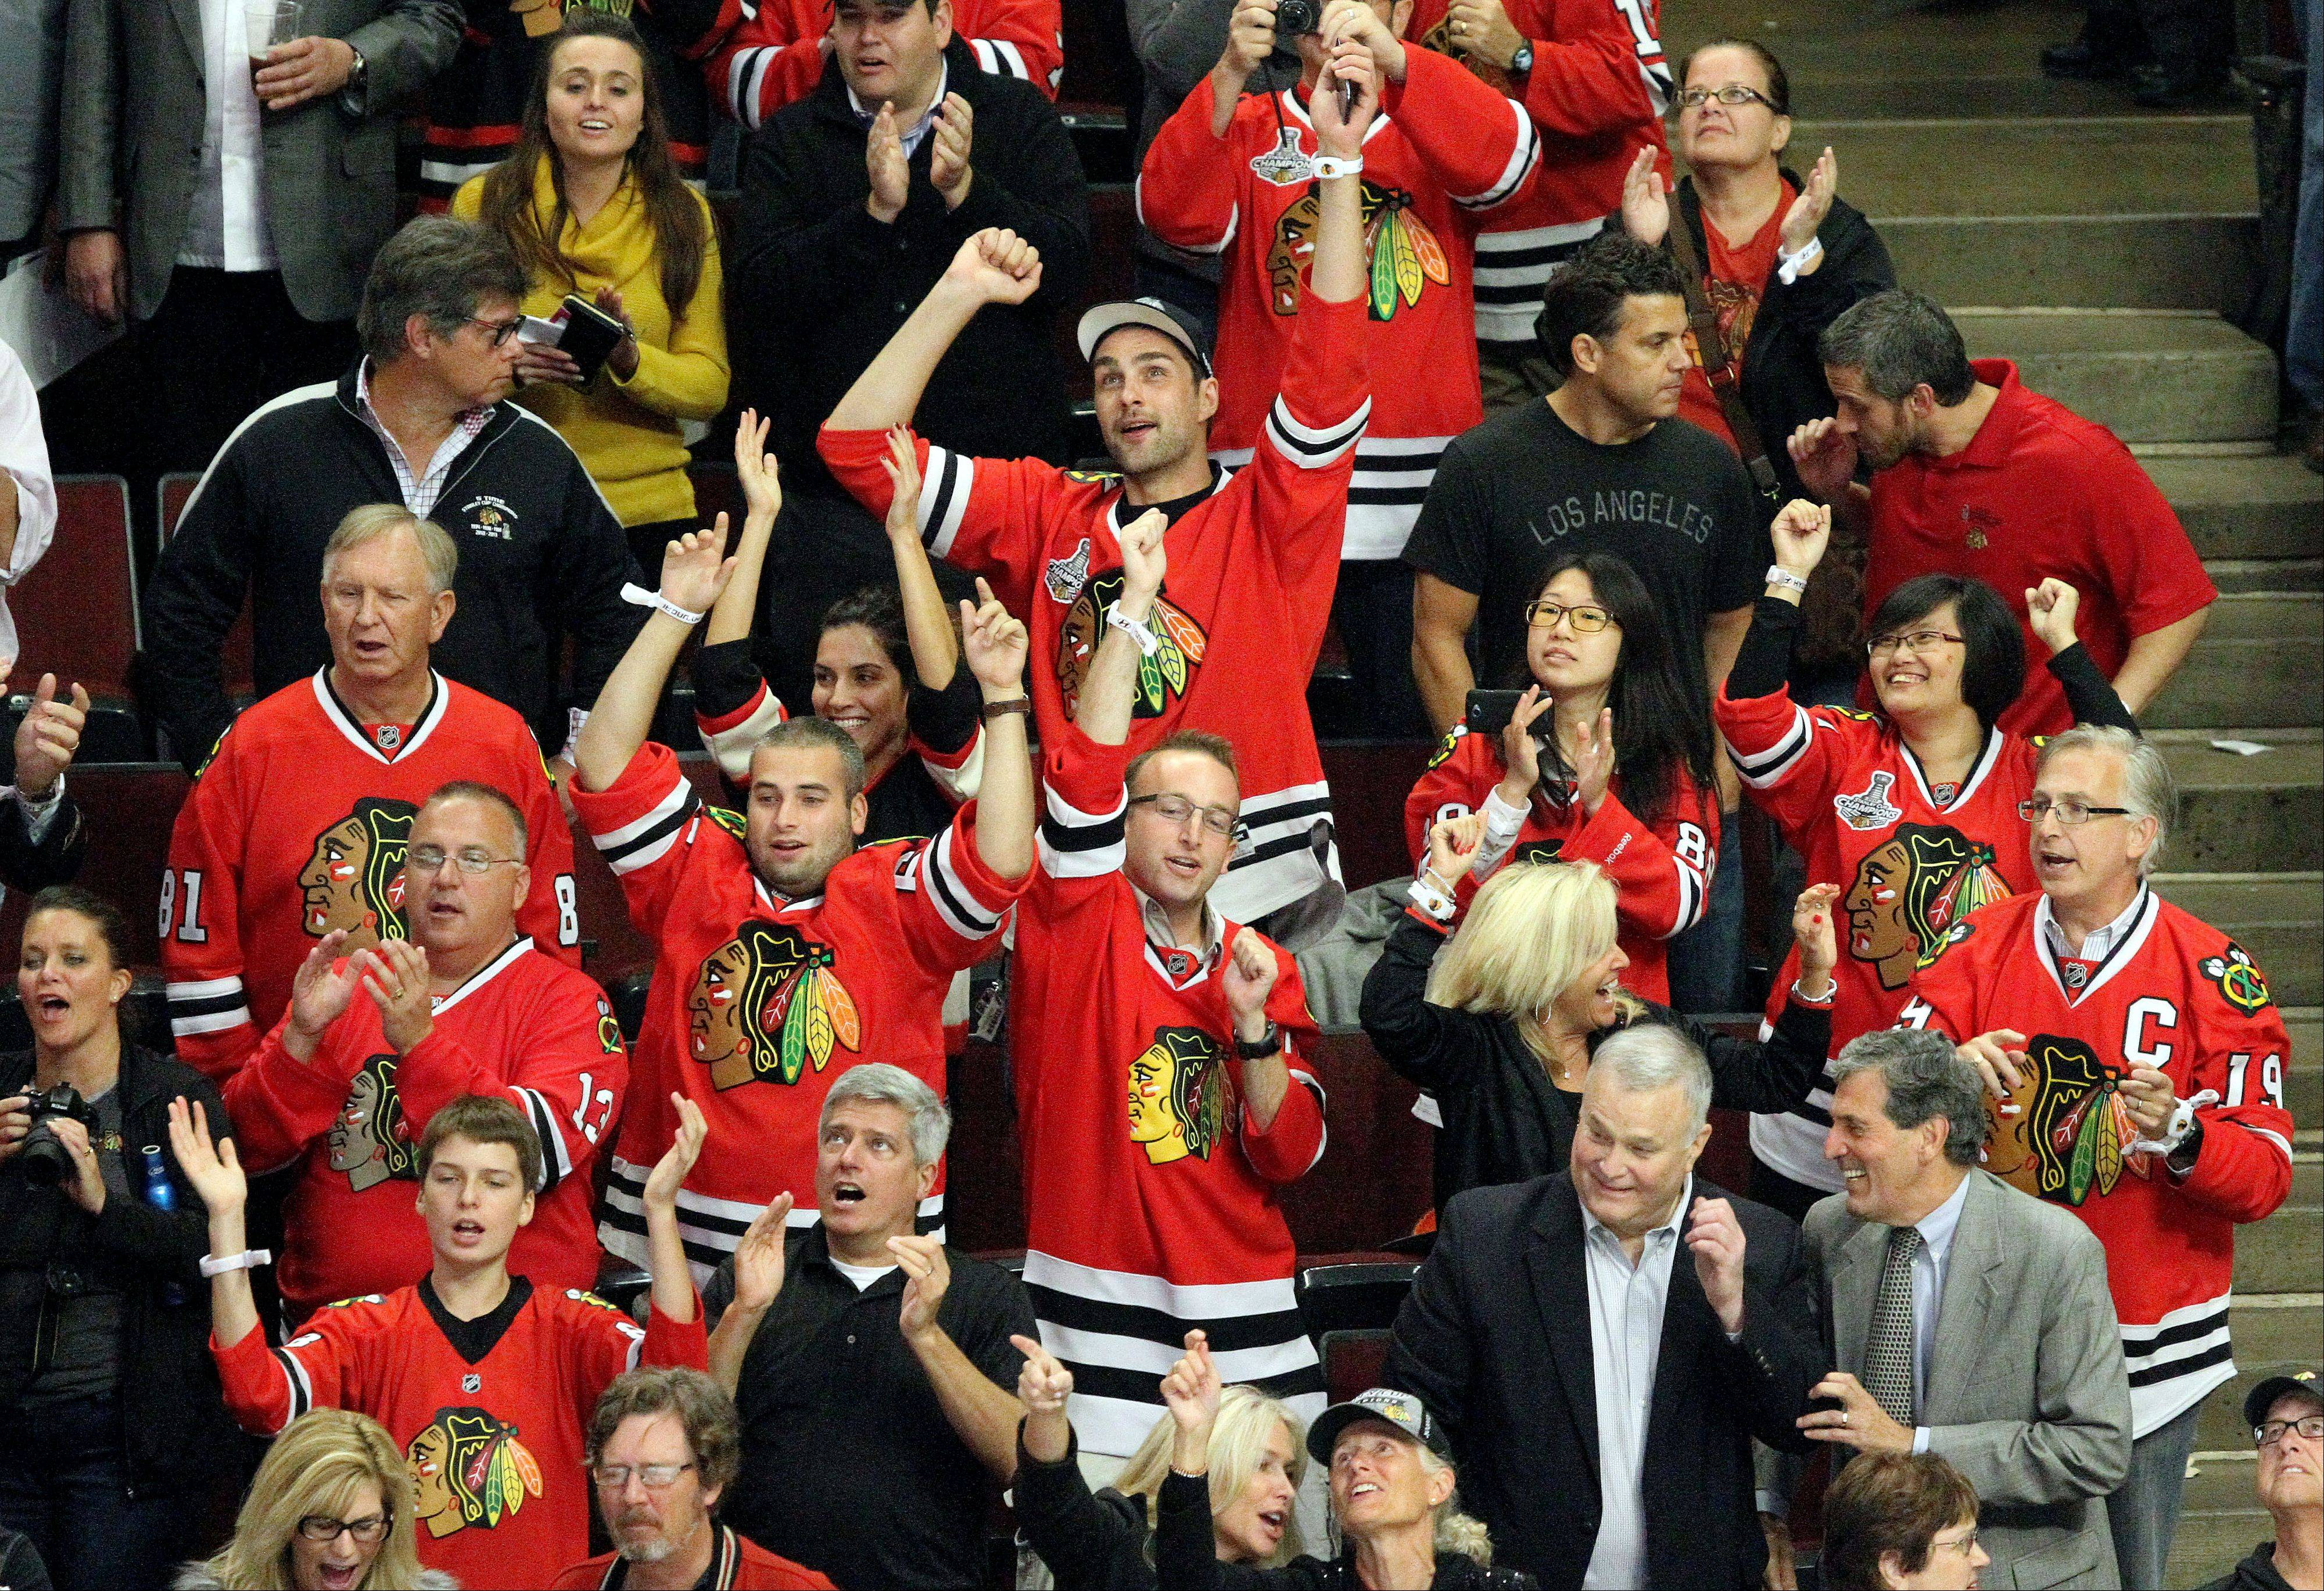 Mike North counts himself among the Blackhawks faithful who believe the Chicago club will repeat as Stanley Cup champions. These fnFans cheered the team after Tuesday's 6-4 win over the Capitals.